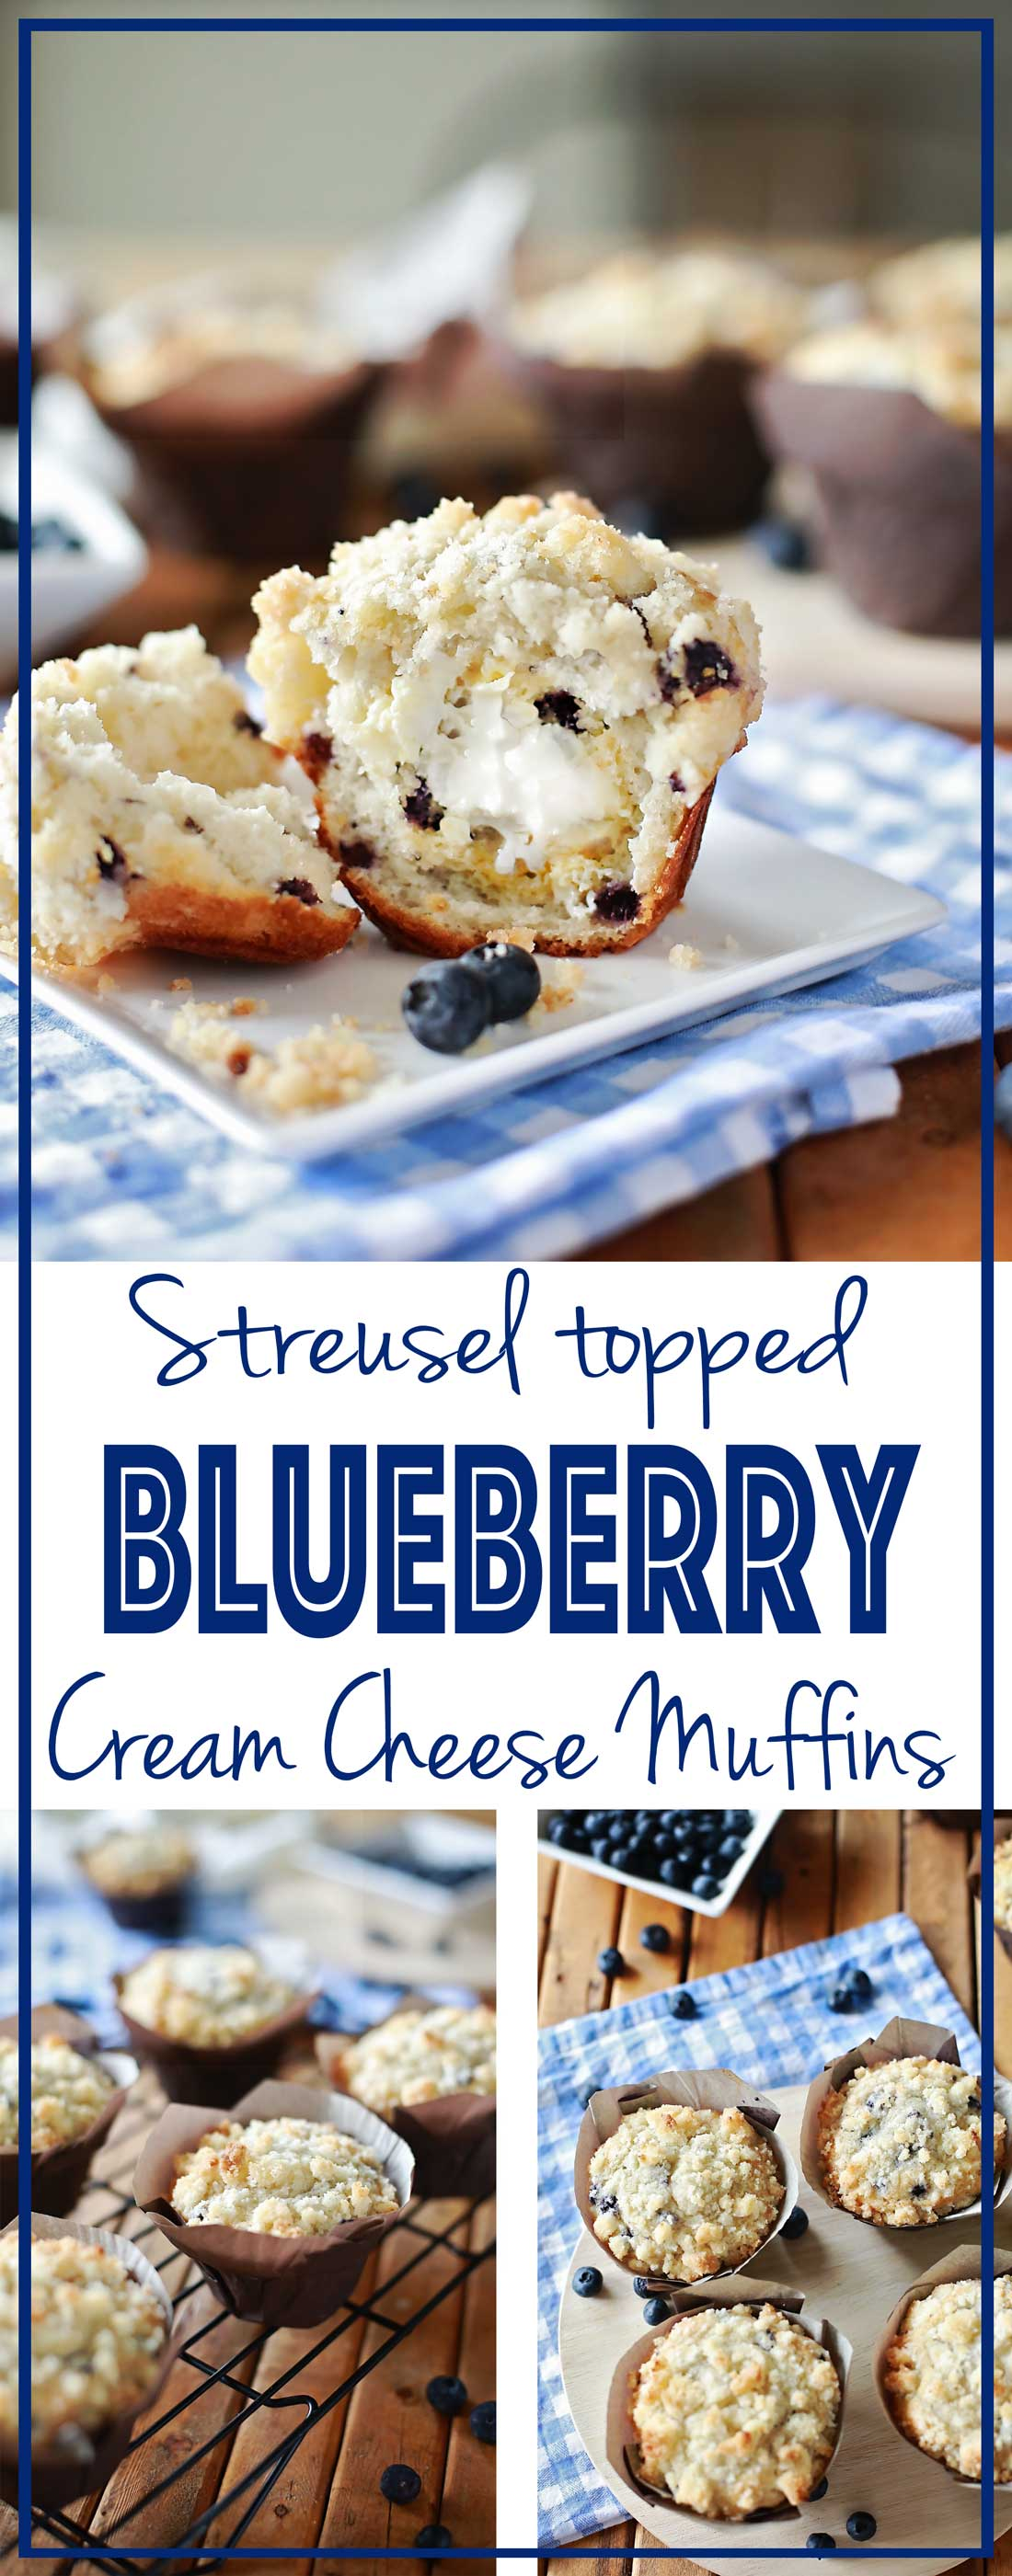 The best Blueberry Muffins EVER!!! Cream Cheese and Blueberries Muffins topped with Streusel!!!